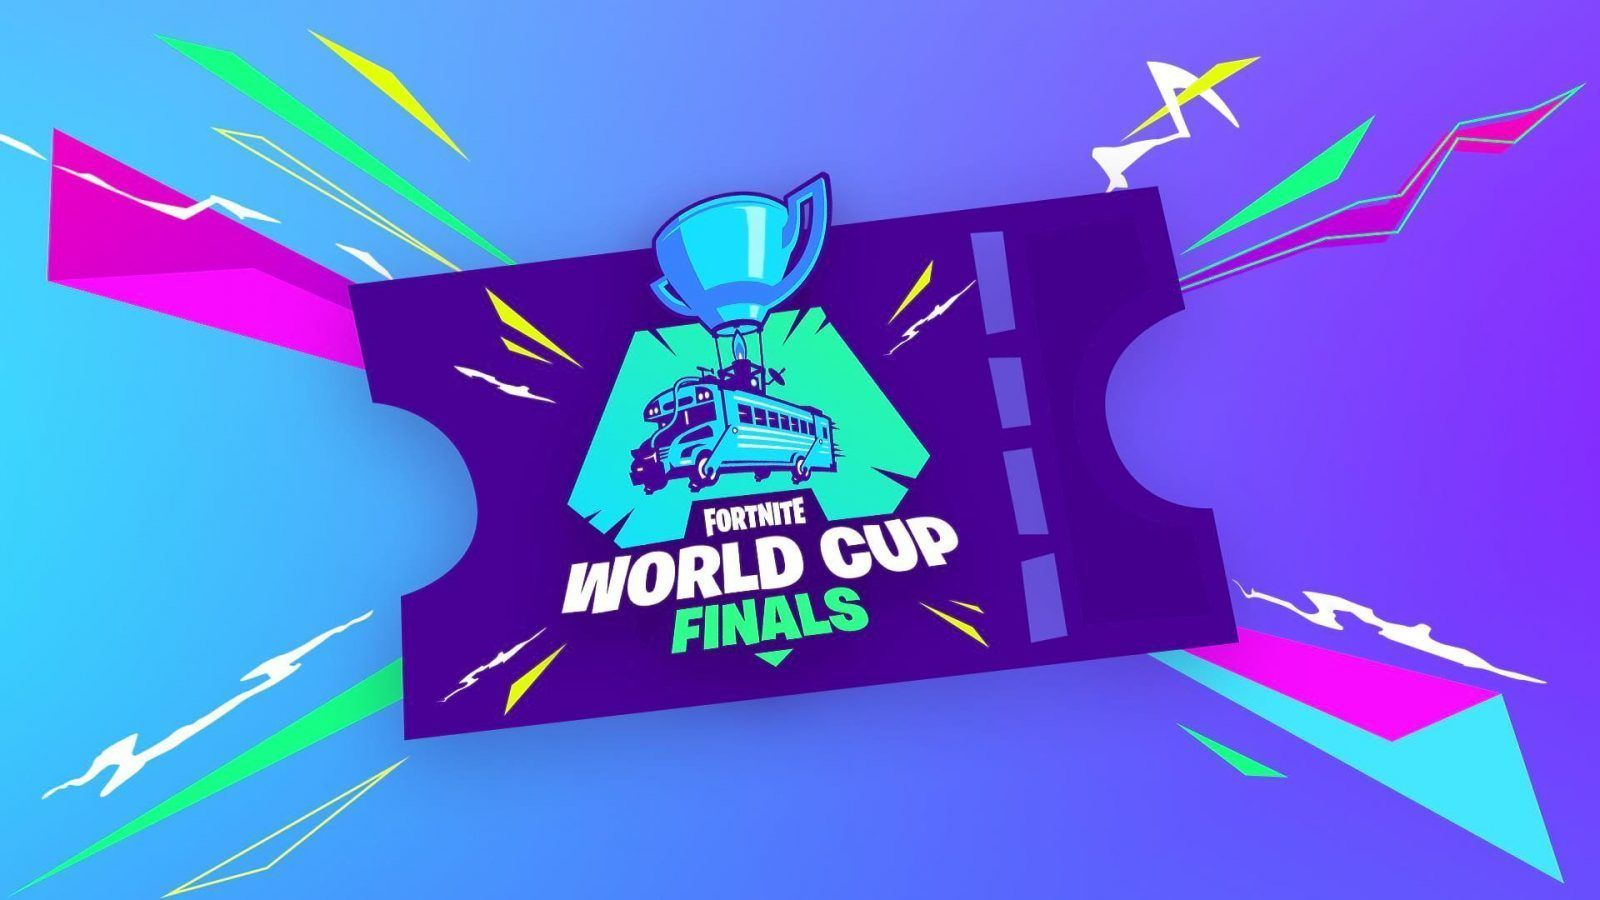 Fortnite World Cup 2019 Finals - What's happening and how to watch